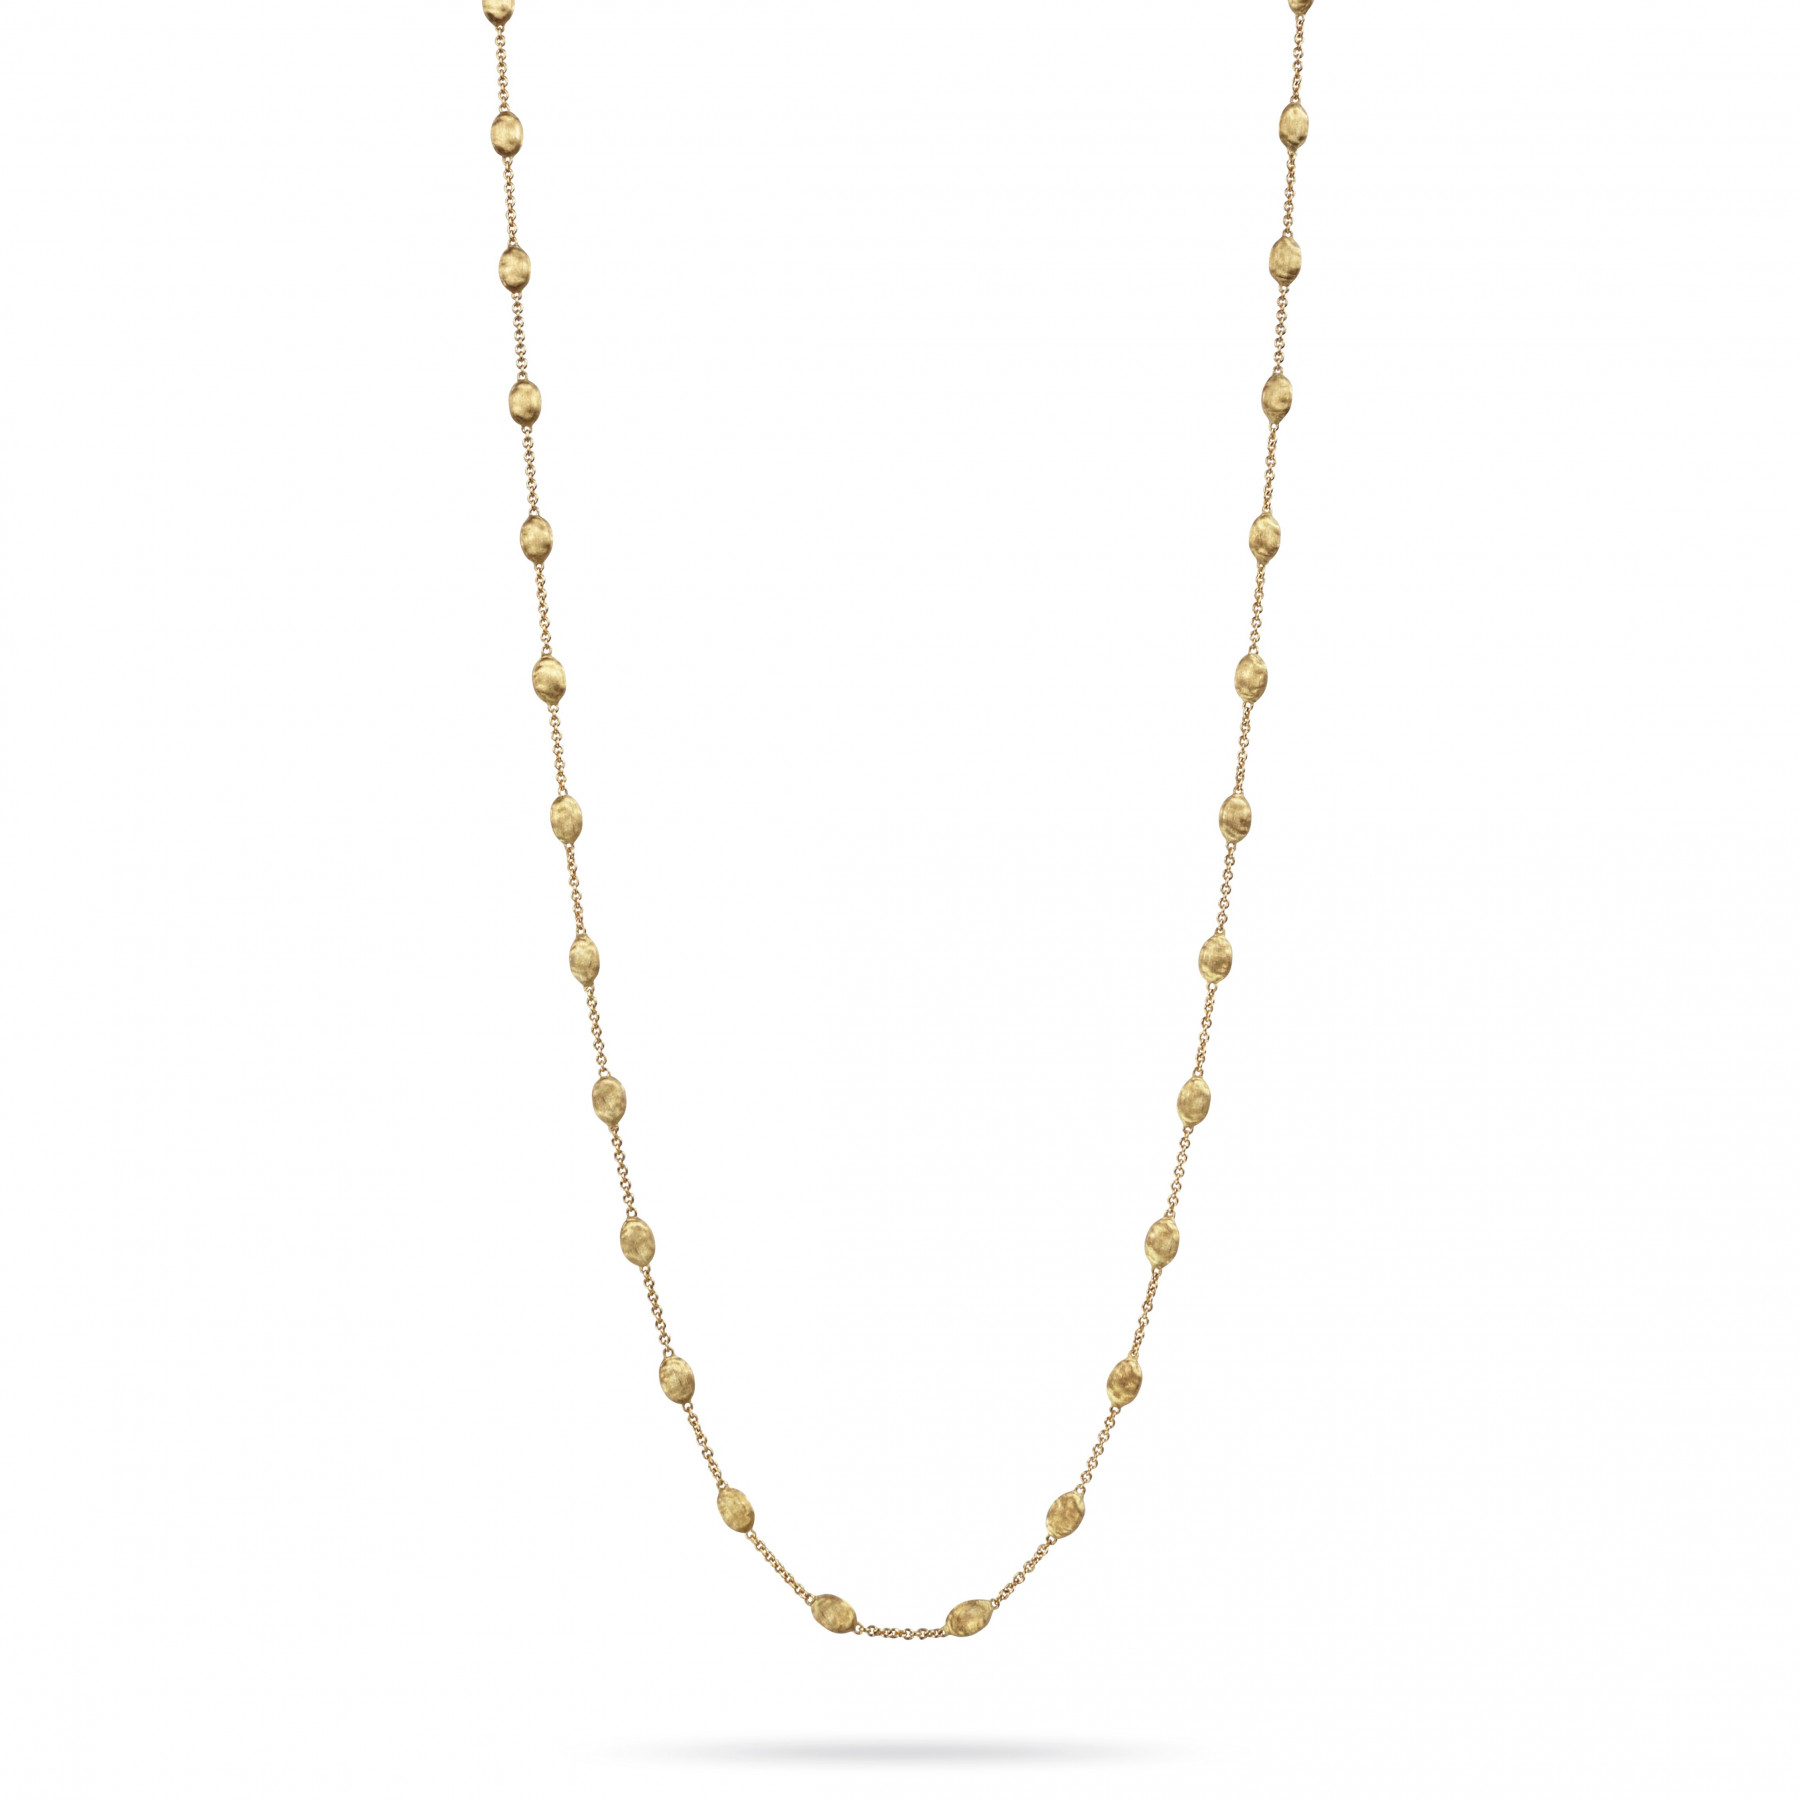 Marco Bicego Siviglia Long Station Necklace